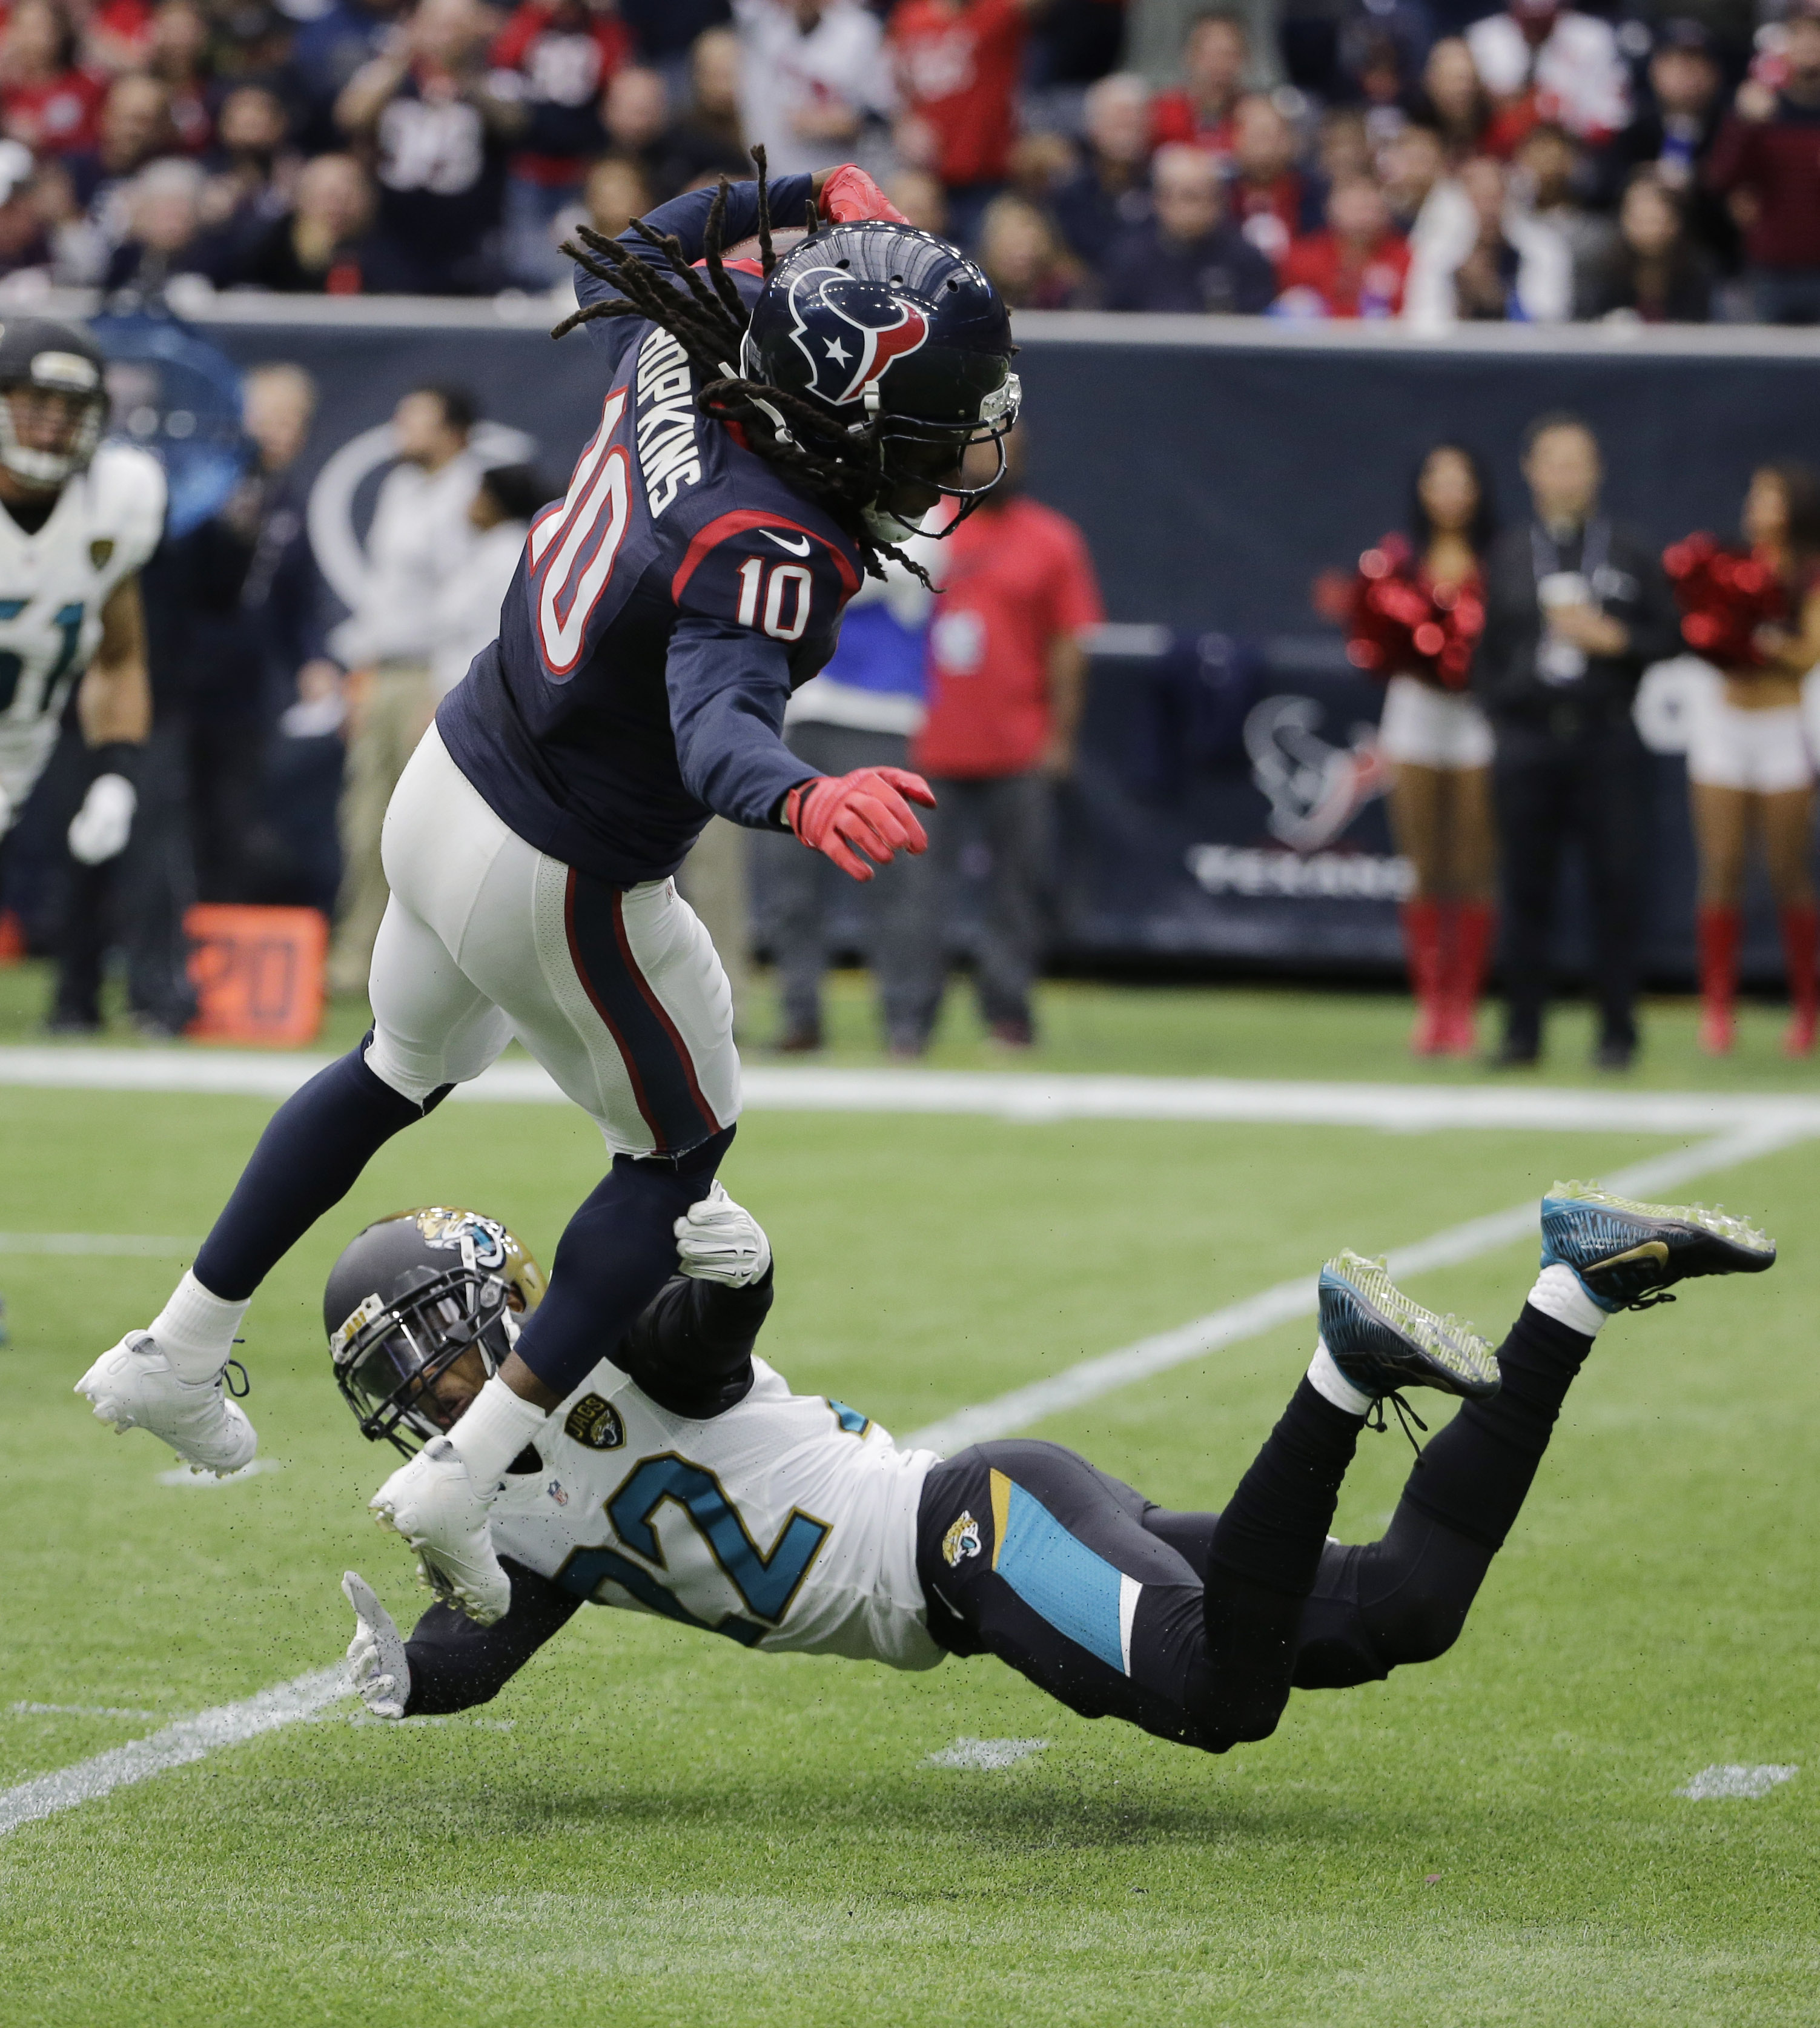 Houston Texans wide receiver DeAndre Hopkins (10) is tripped up by Jacksonville Jaguars cornerback Aaron Colvin (22) after a reception during the first half an NFL football game Sunday, Jan. 3, 2016, in Houston. (AP Photo/David J. Phillip)